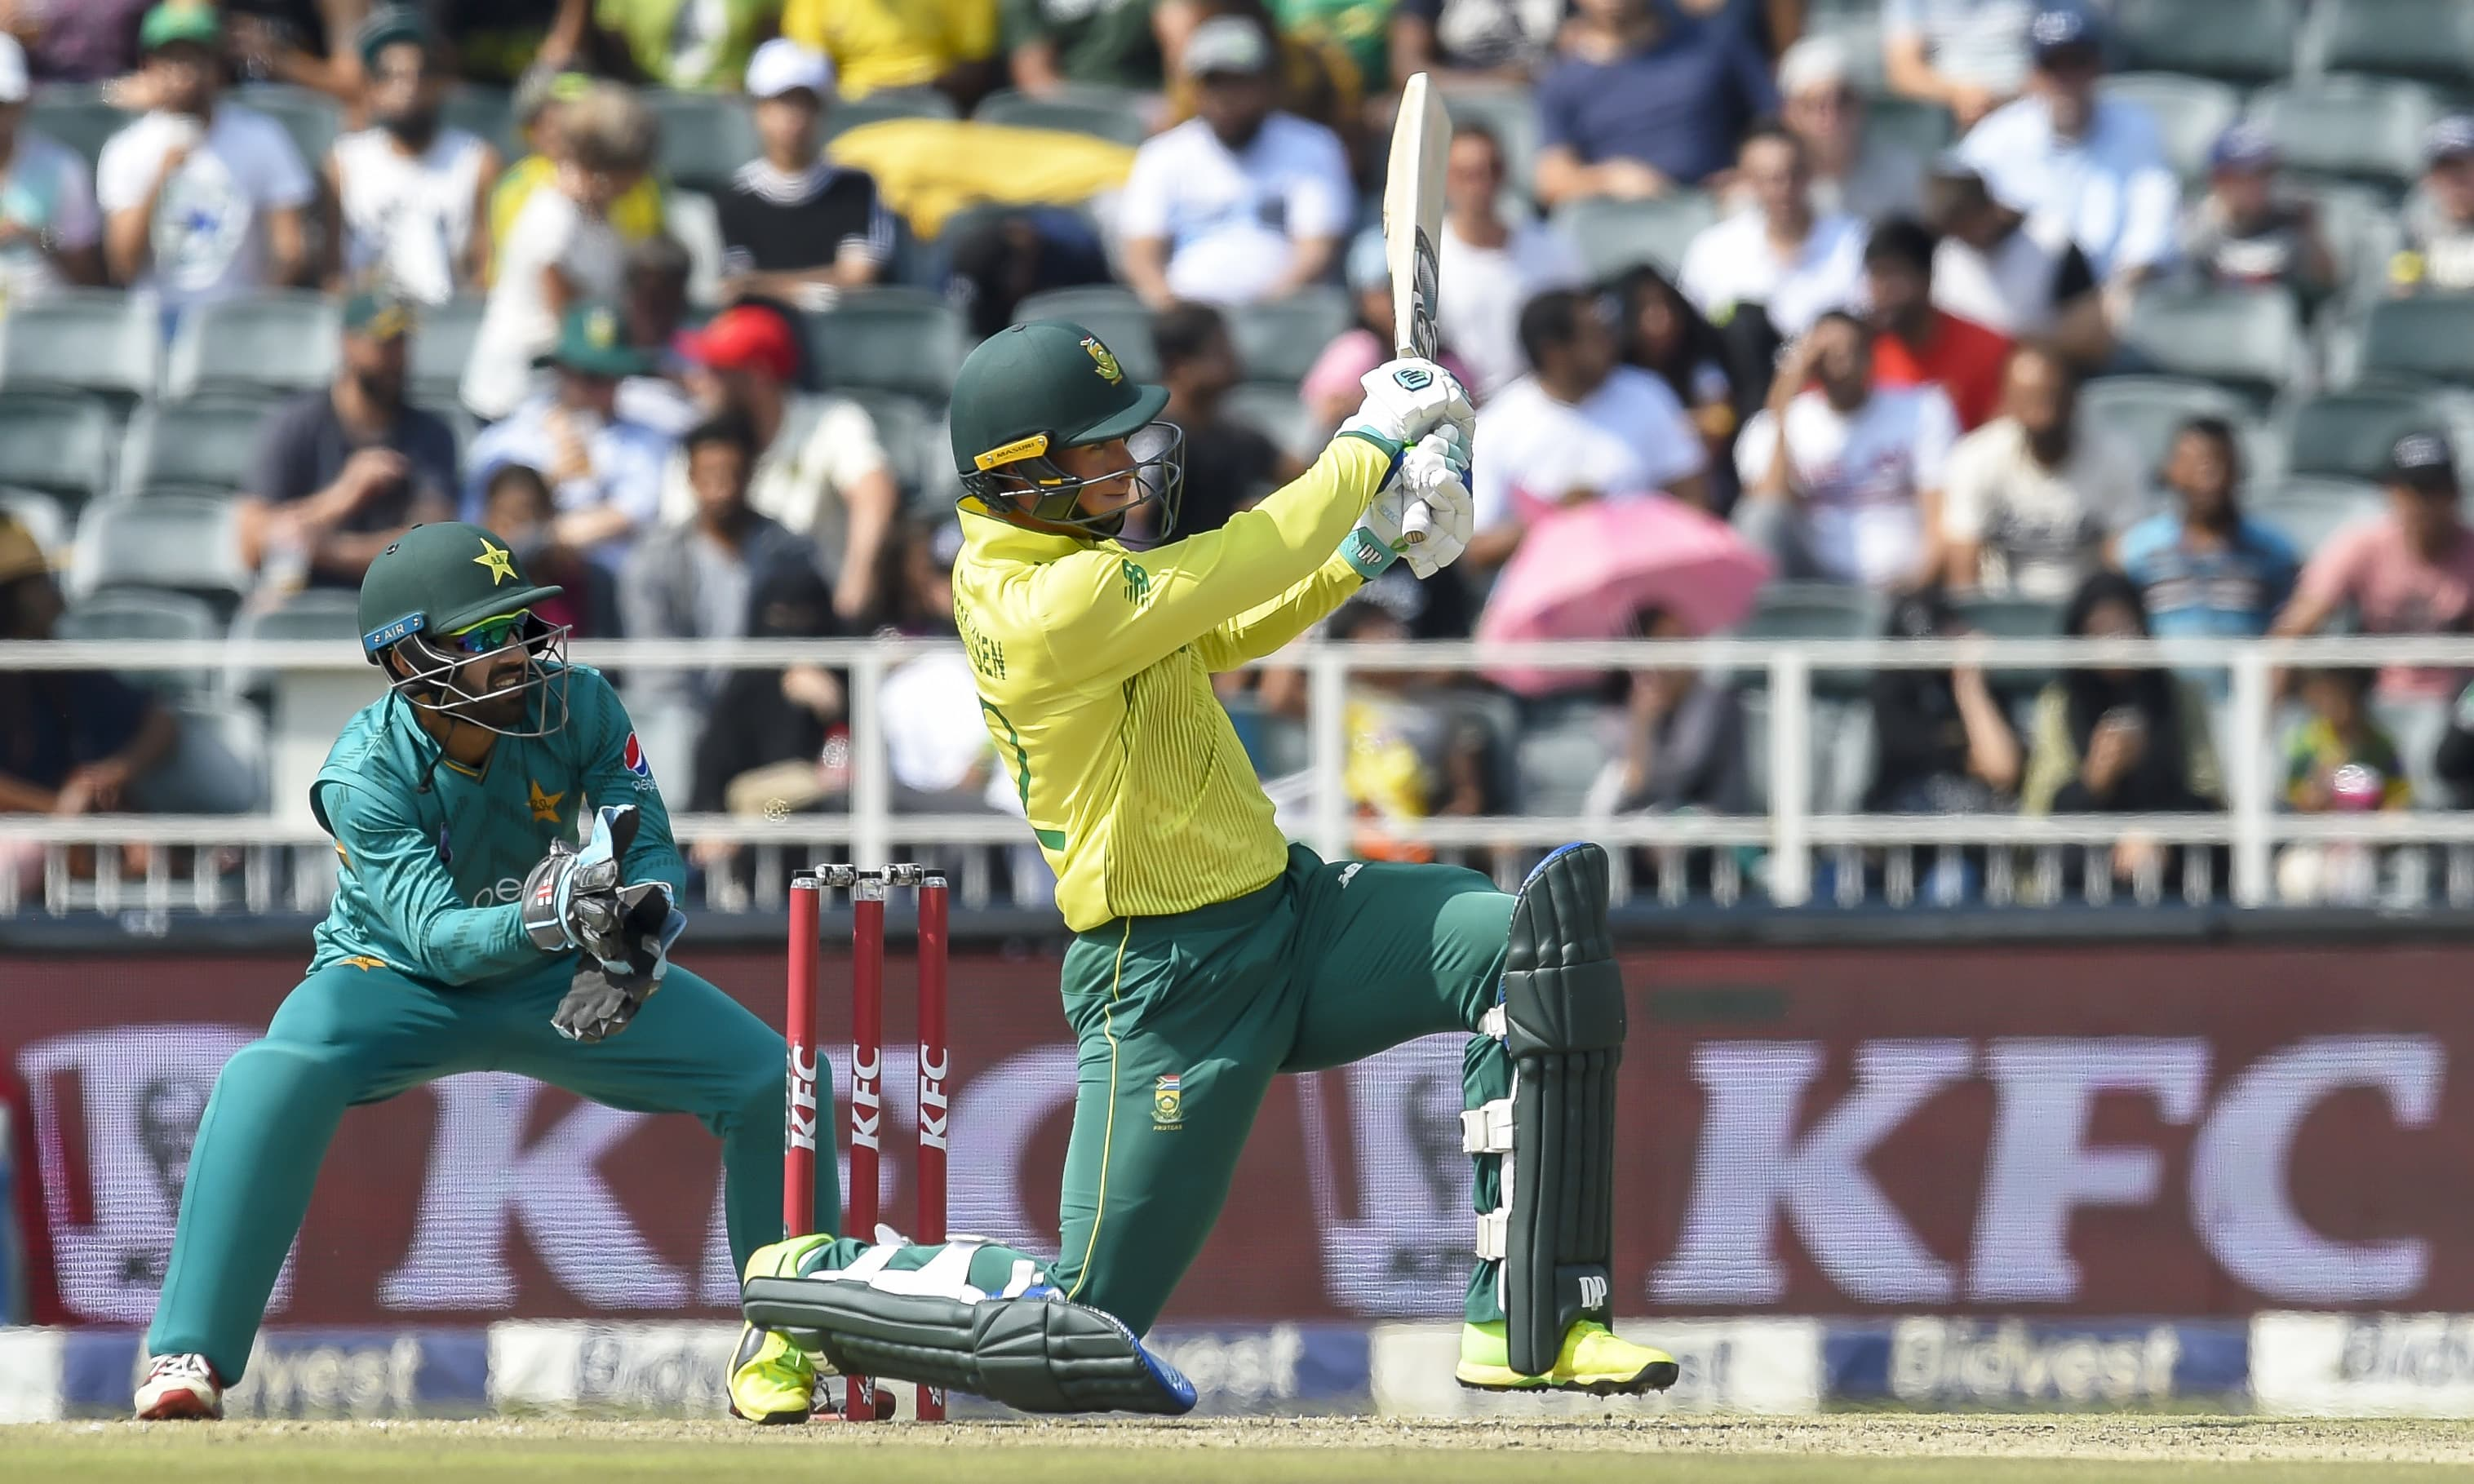 South Africa end Pakistan's record run of T20 series victories